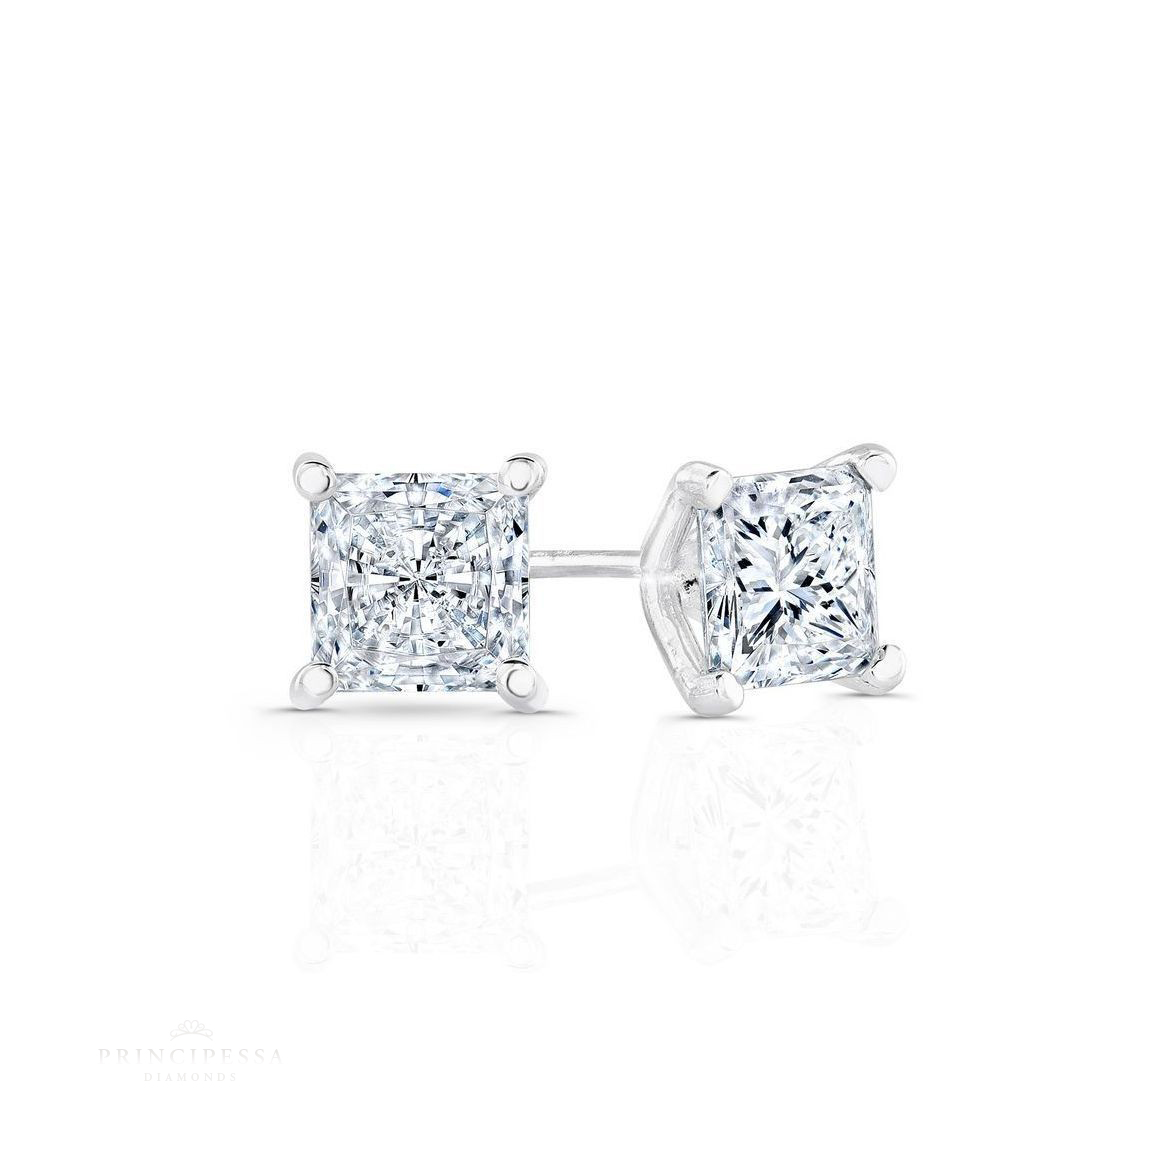 1 CARAT REAL F PRINCESS CUT DIAMOND SOLITAIRE ACCENT RING WHITE GOLD 14K